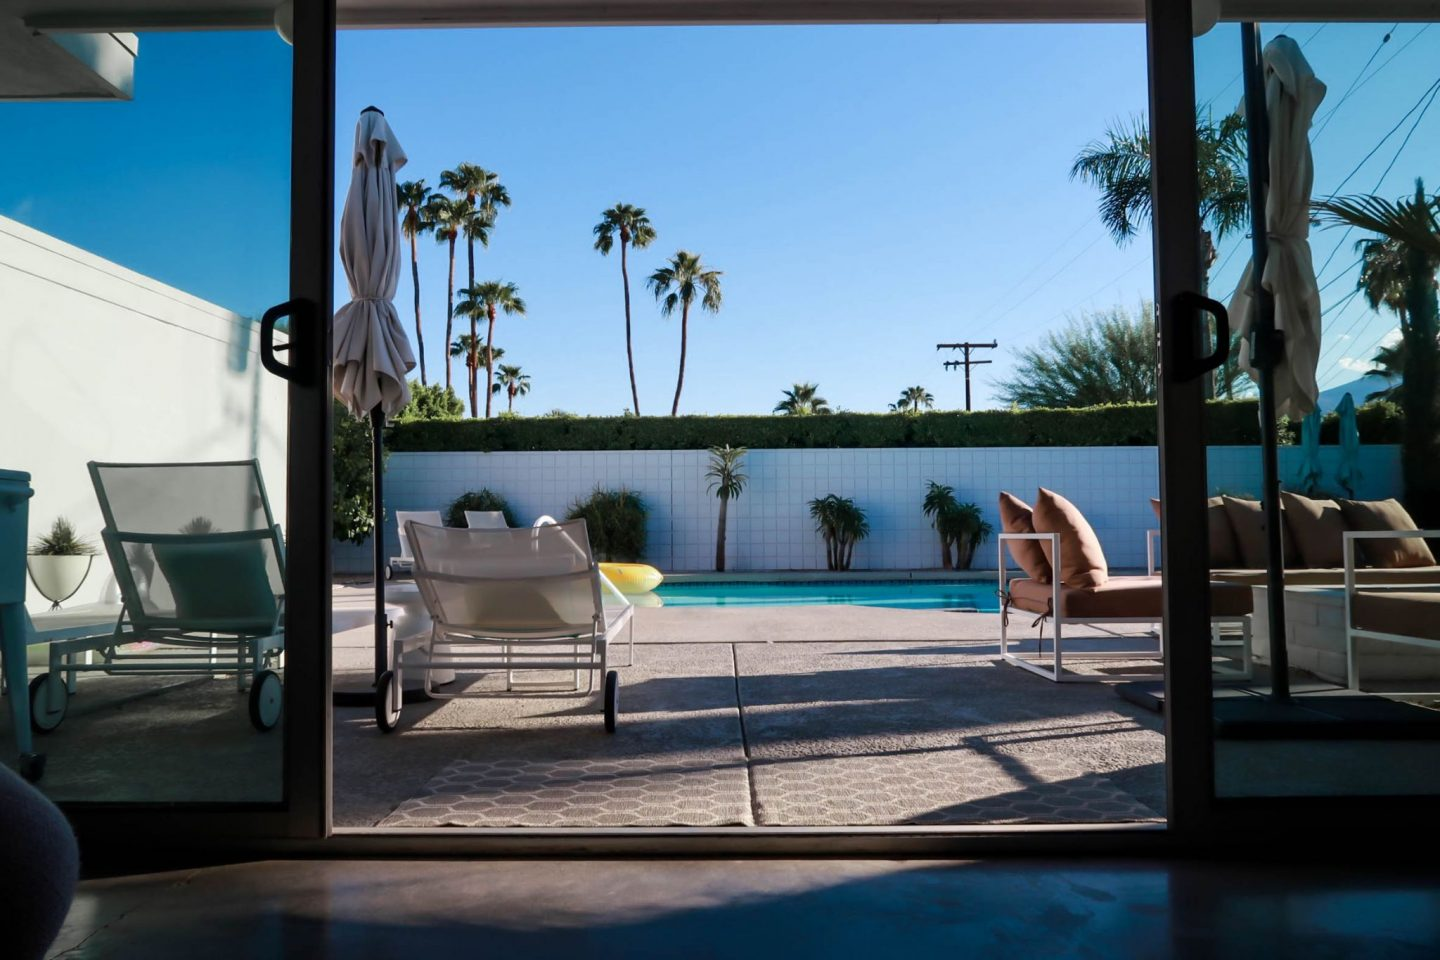 palm springs - modern home - Laurens Schwaiger travel blog